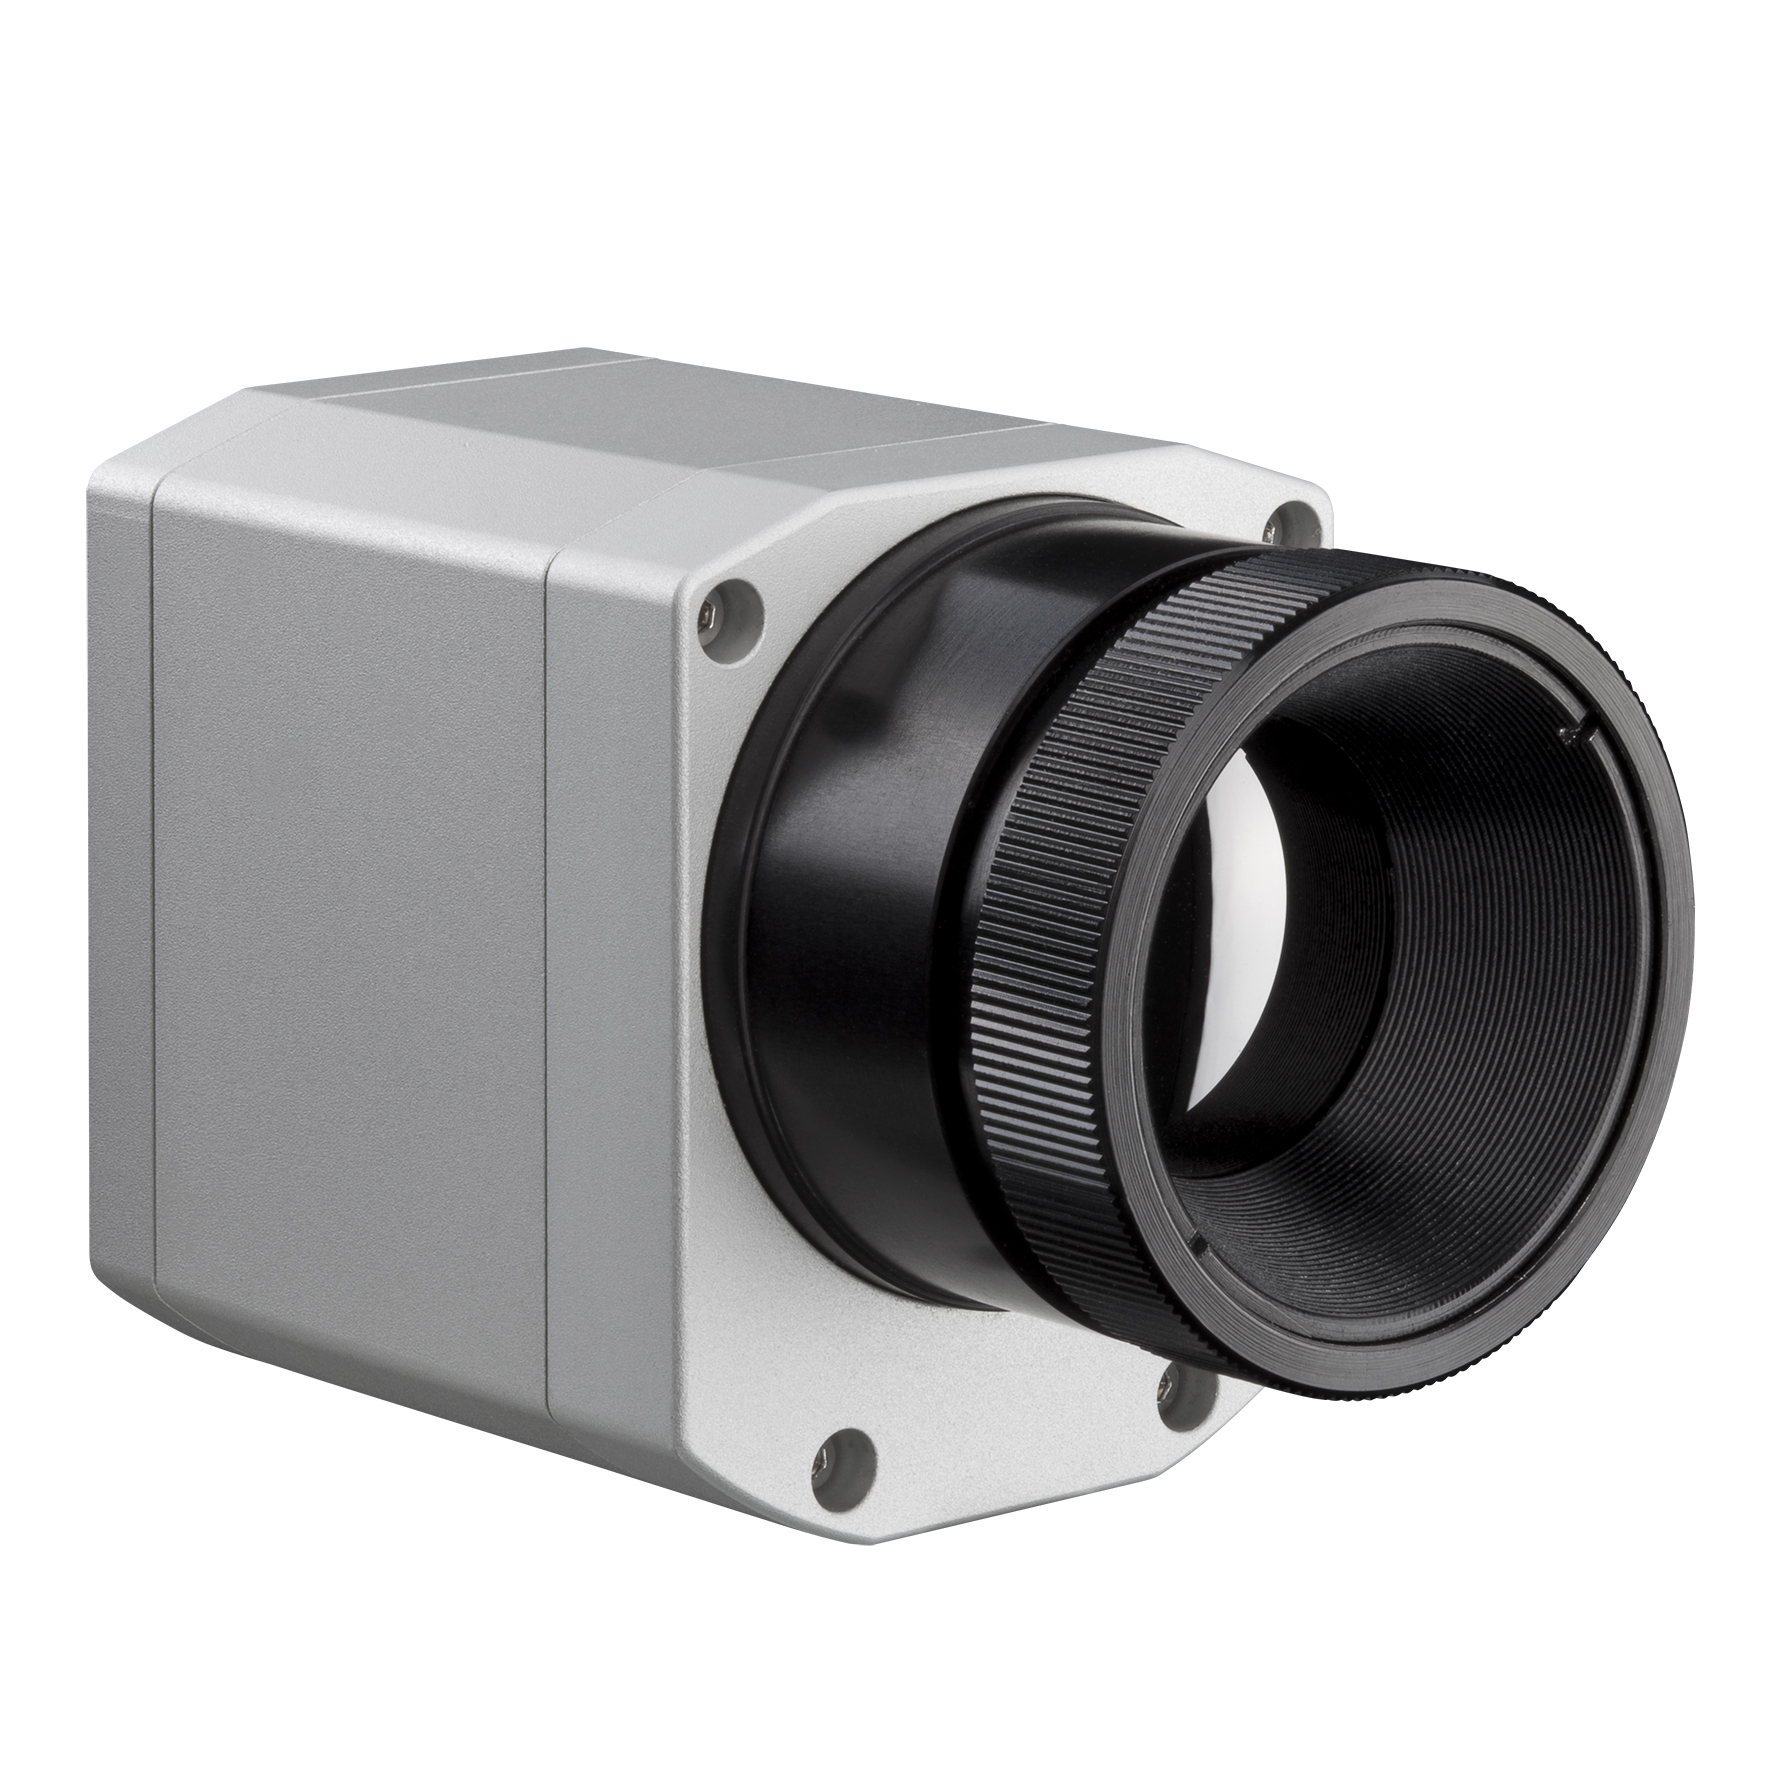 optris PI 640i The smallest measuring VGA thermal imager worldwide